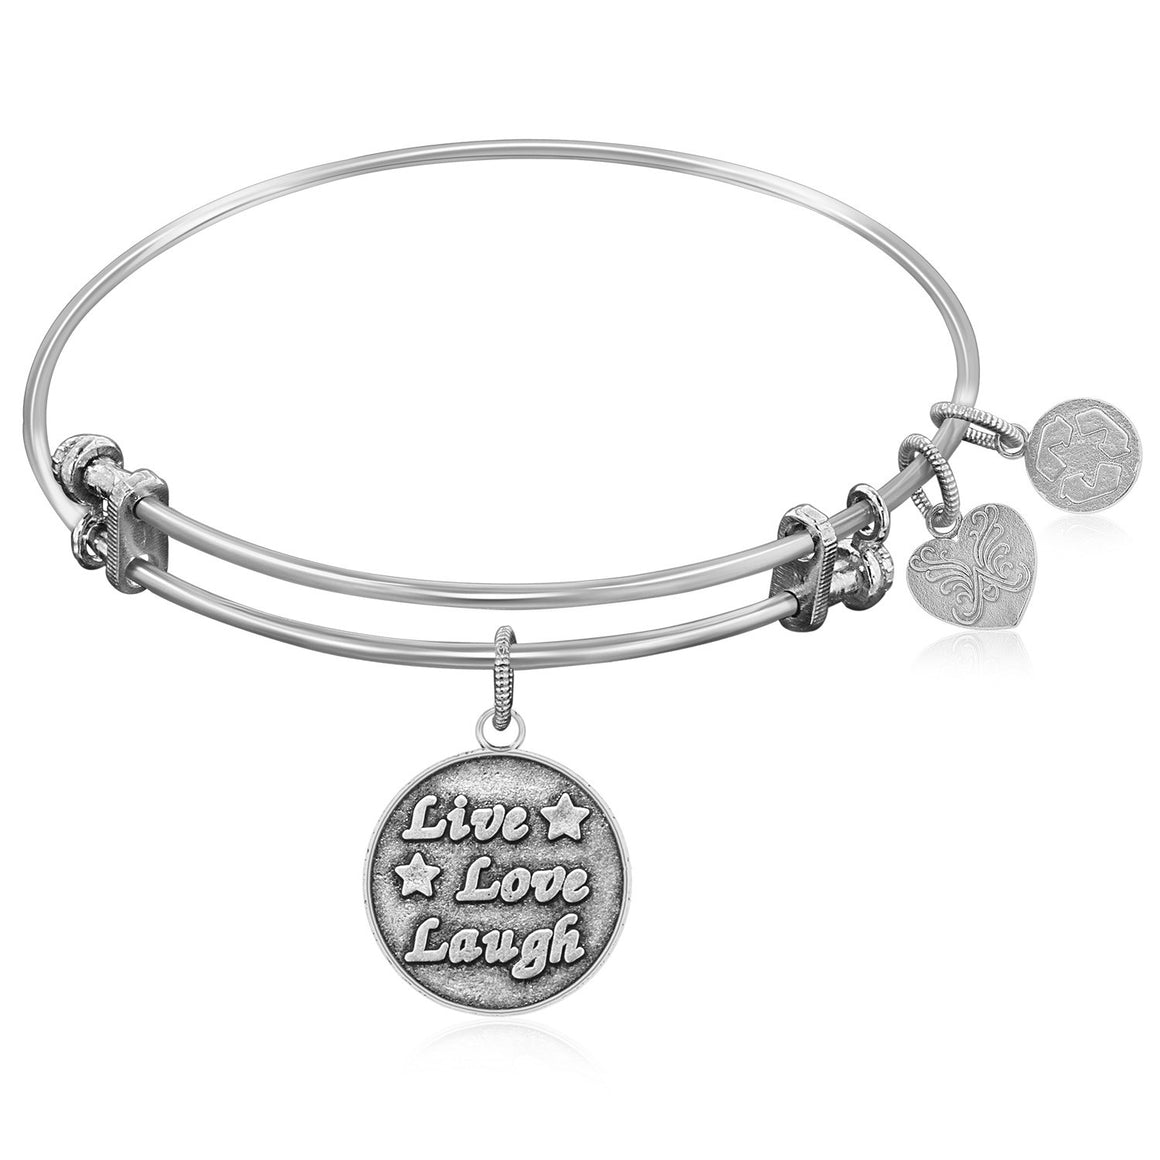 Expandable Bangle in White Tone Brass with Joy of Life Symbol